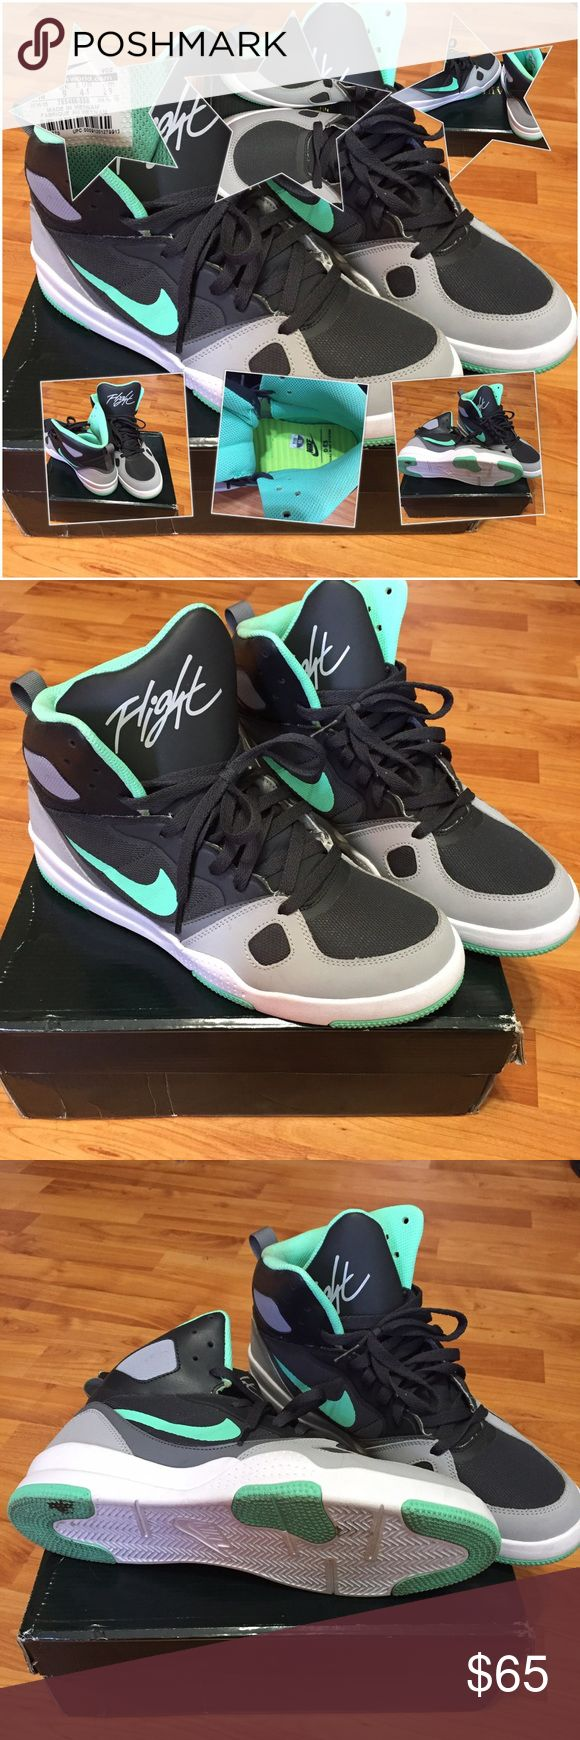 Nike flight men's size 10! These are new Nike flights worn once but they where too small! Men's size 10! Don't have the box because we bought them outta state but they are nice and will be packaged nice to avoid scuffing! Nike Shoes Sneakers